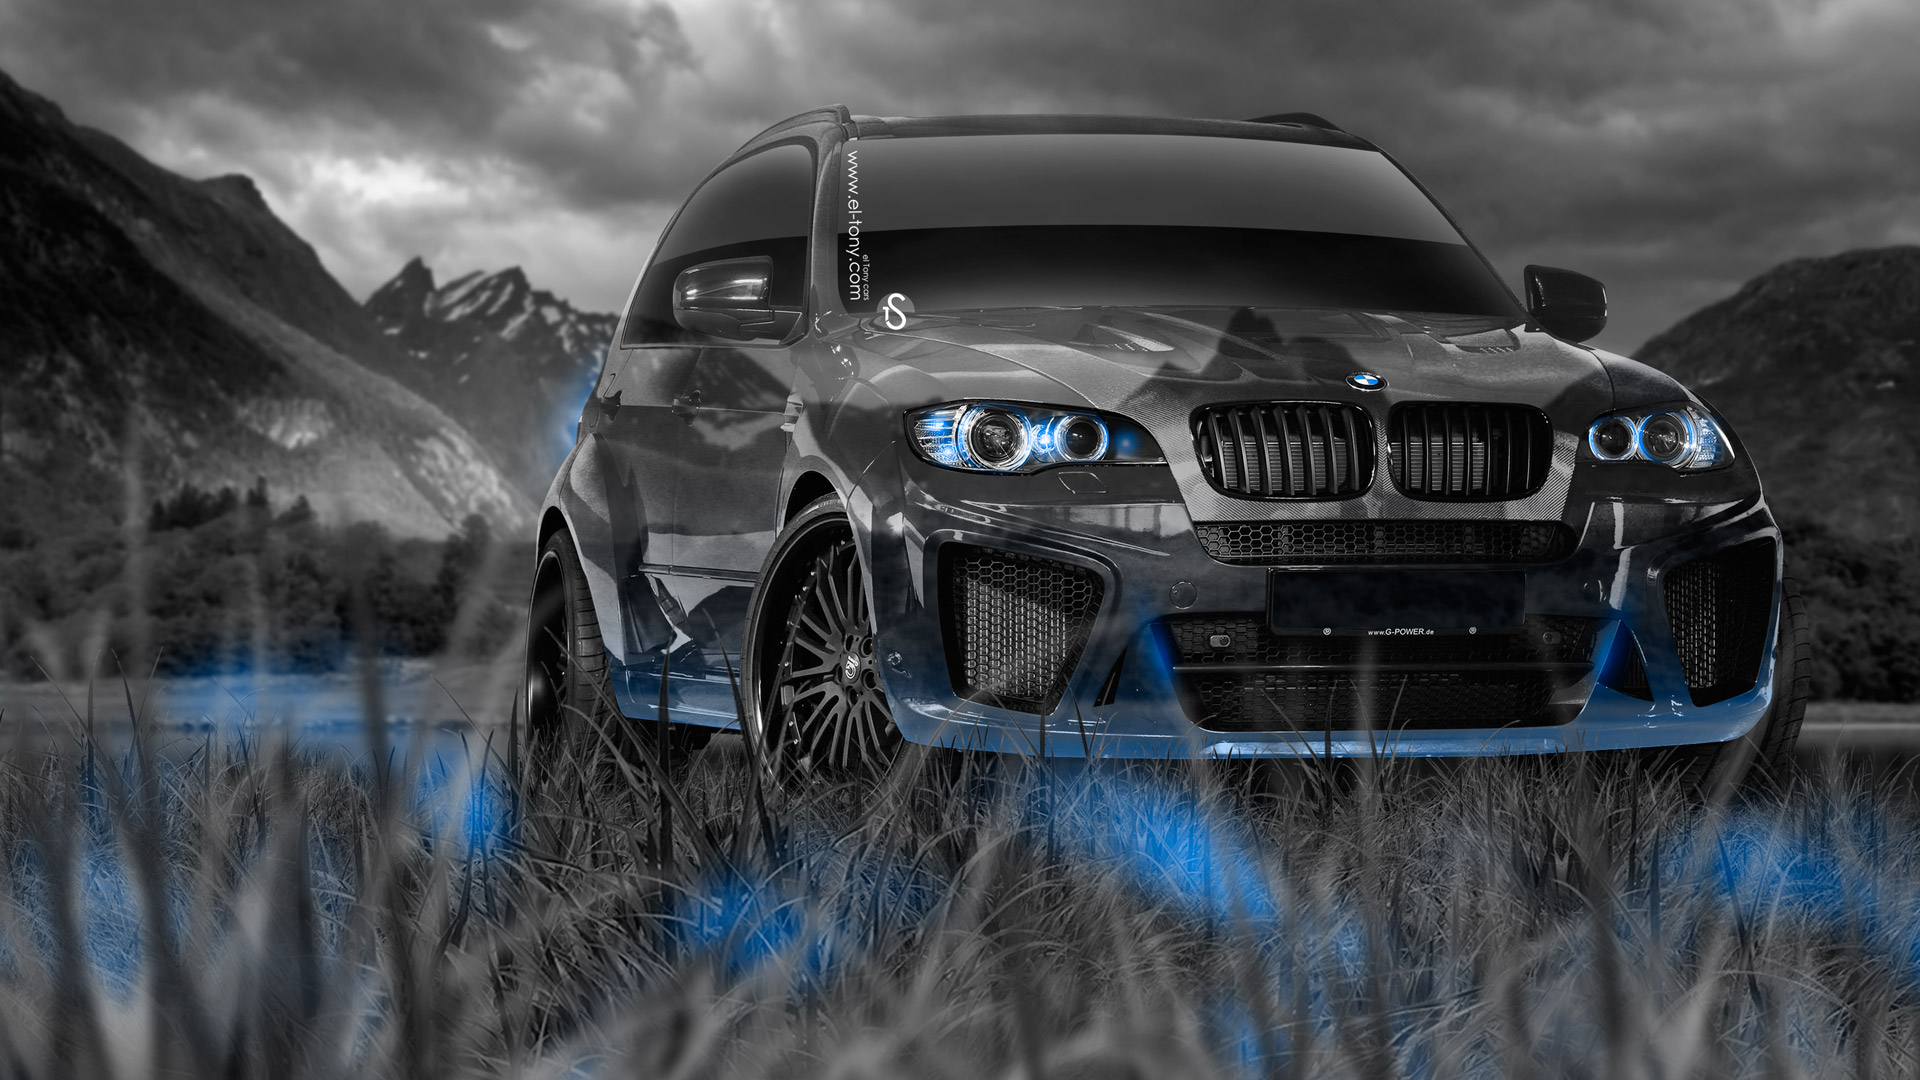 Bmw X5 Tuning Crystal Nature Car 2014 El Tony